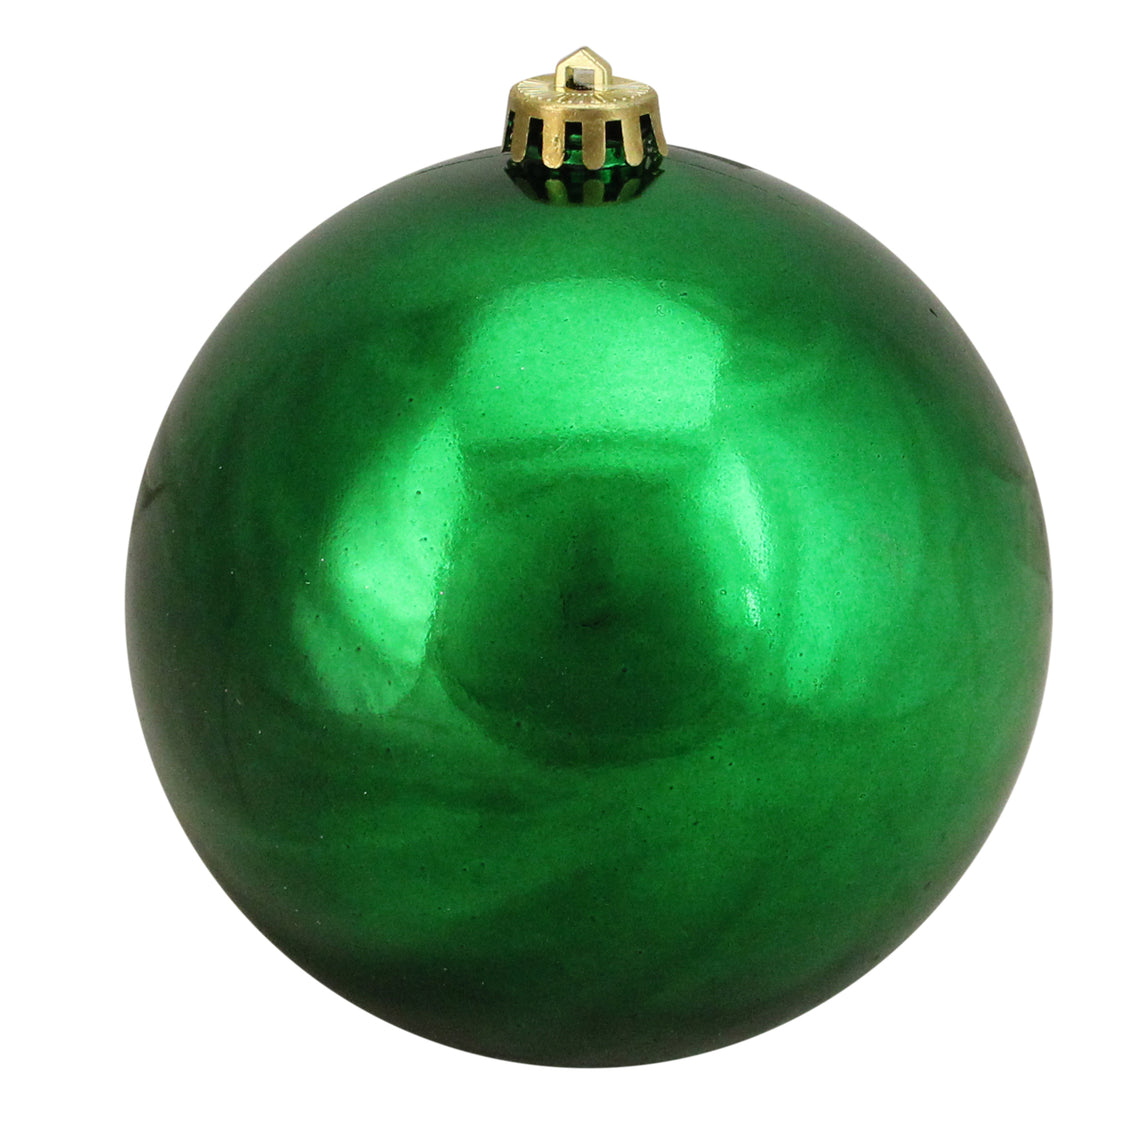 Northlight Lj34841-Xmas Green Shatterproof Shiny Christmas Ball Ornament 6